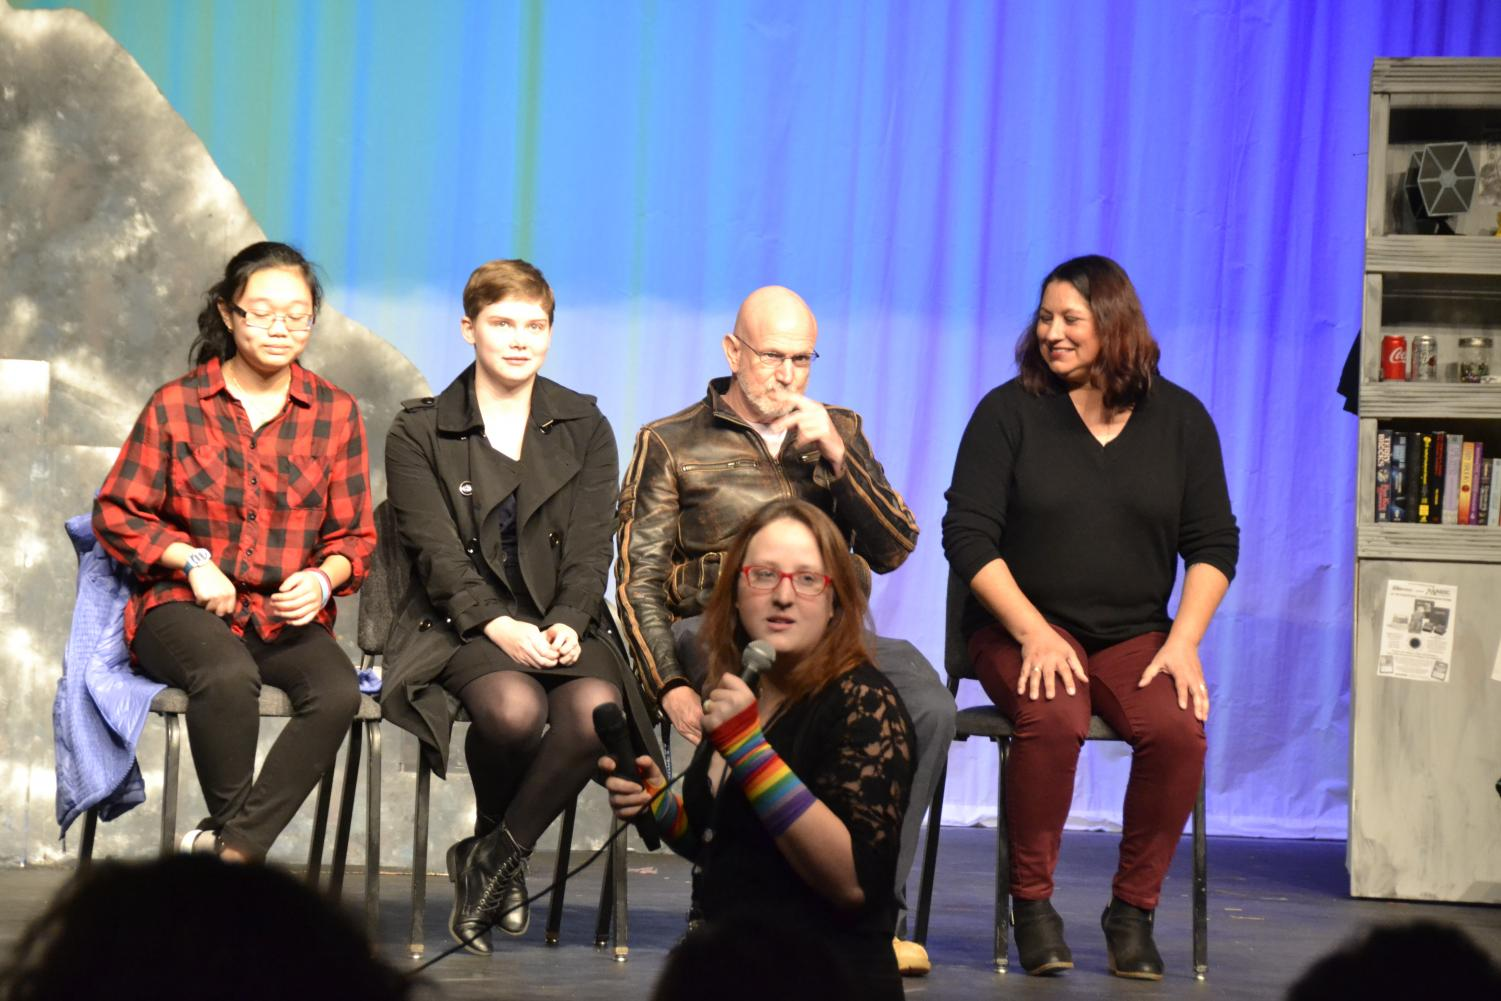 Right+after+the+show%2C+these+four+speakers+answer+LGBTQIA+related+questions+from+the+audience.